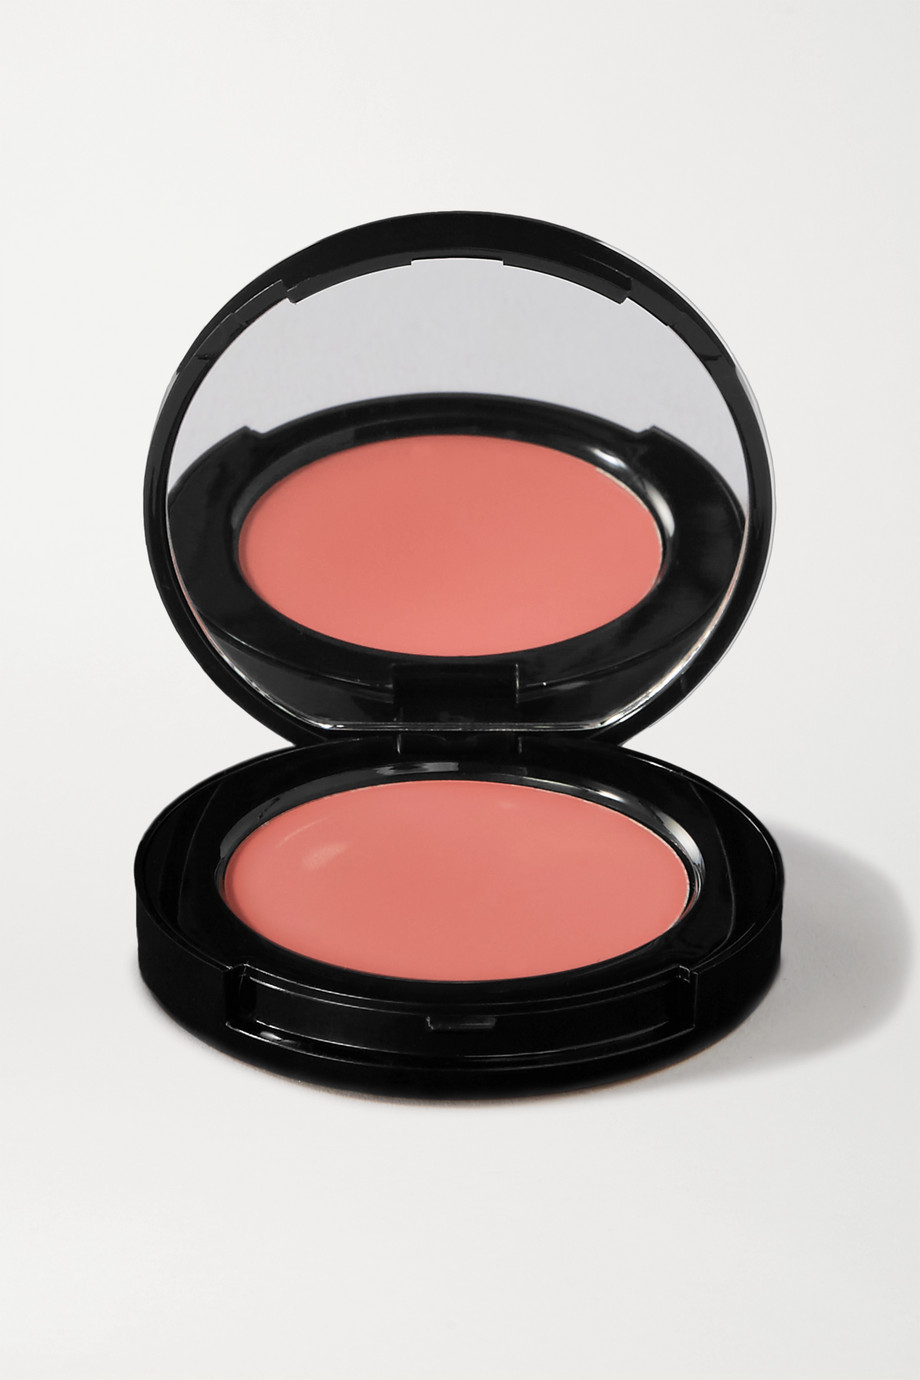 Bobbi Brown Pot Rouge for Lips and Cheeks - Fresh Melon